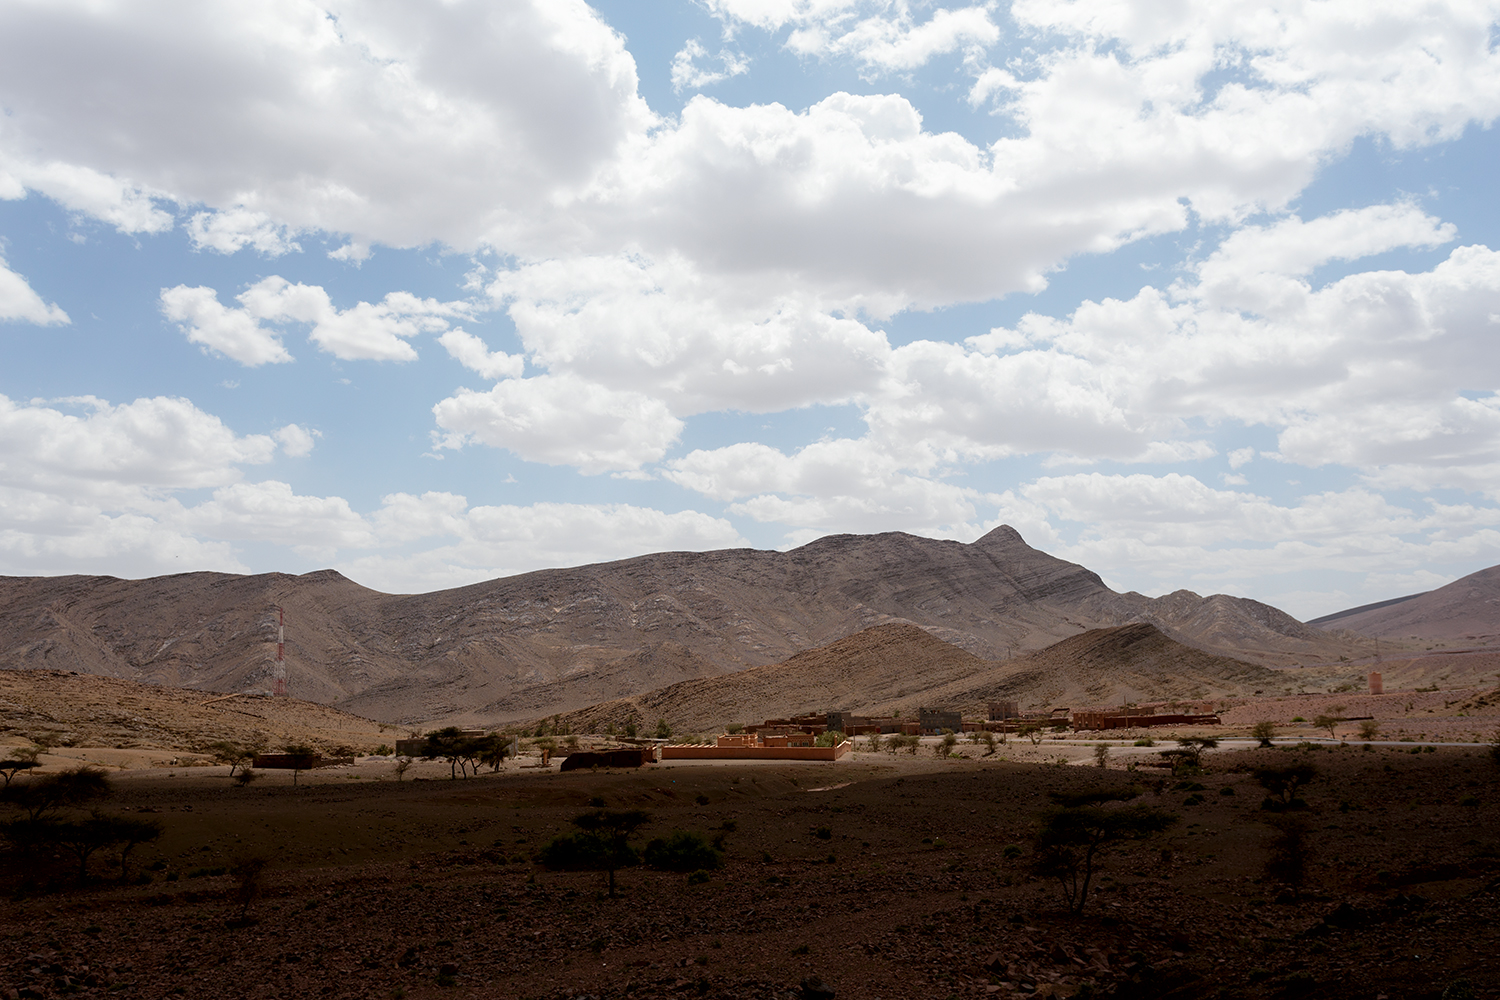 Morocco desert, near Agdz. Sparse vegetation, but interesting terrain.